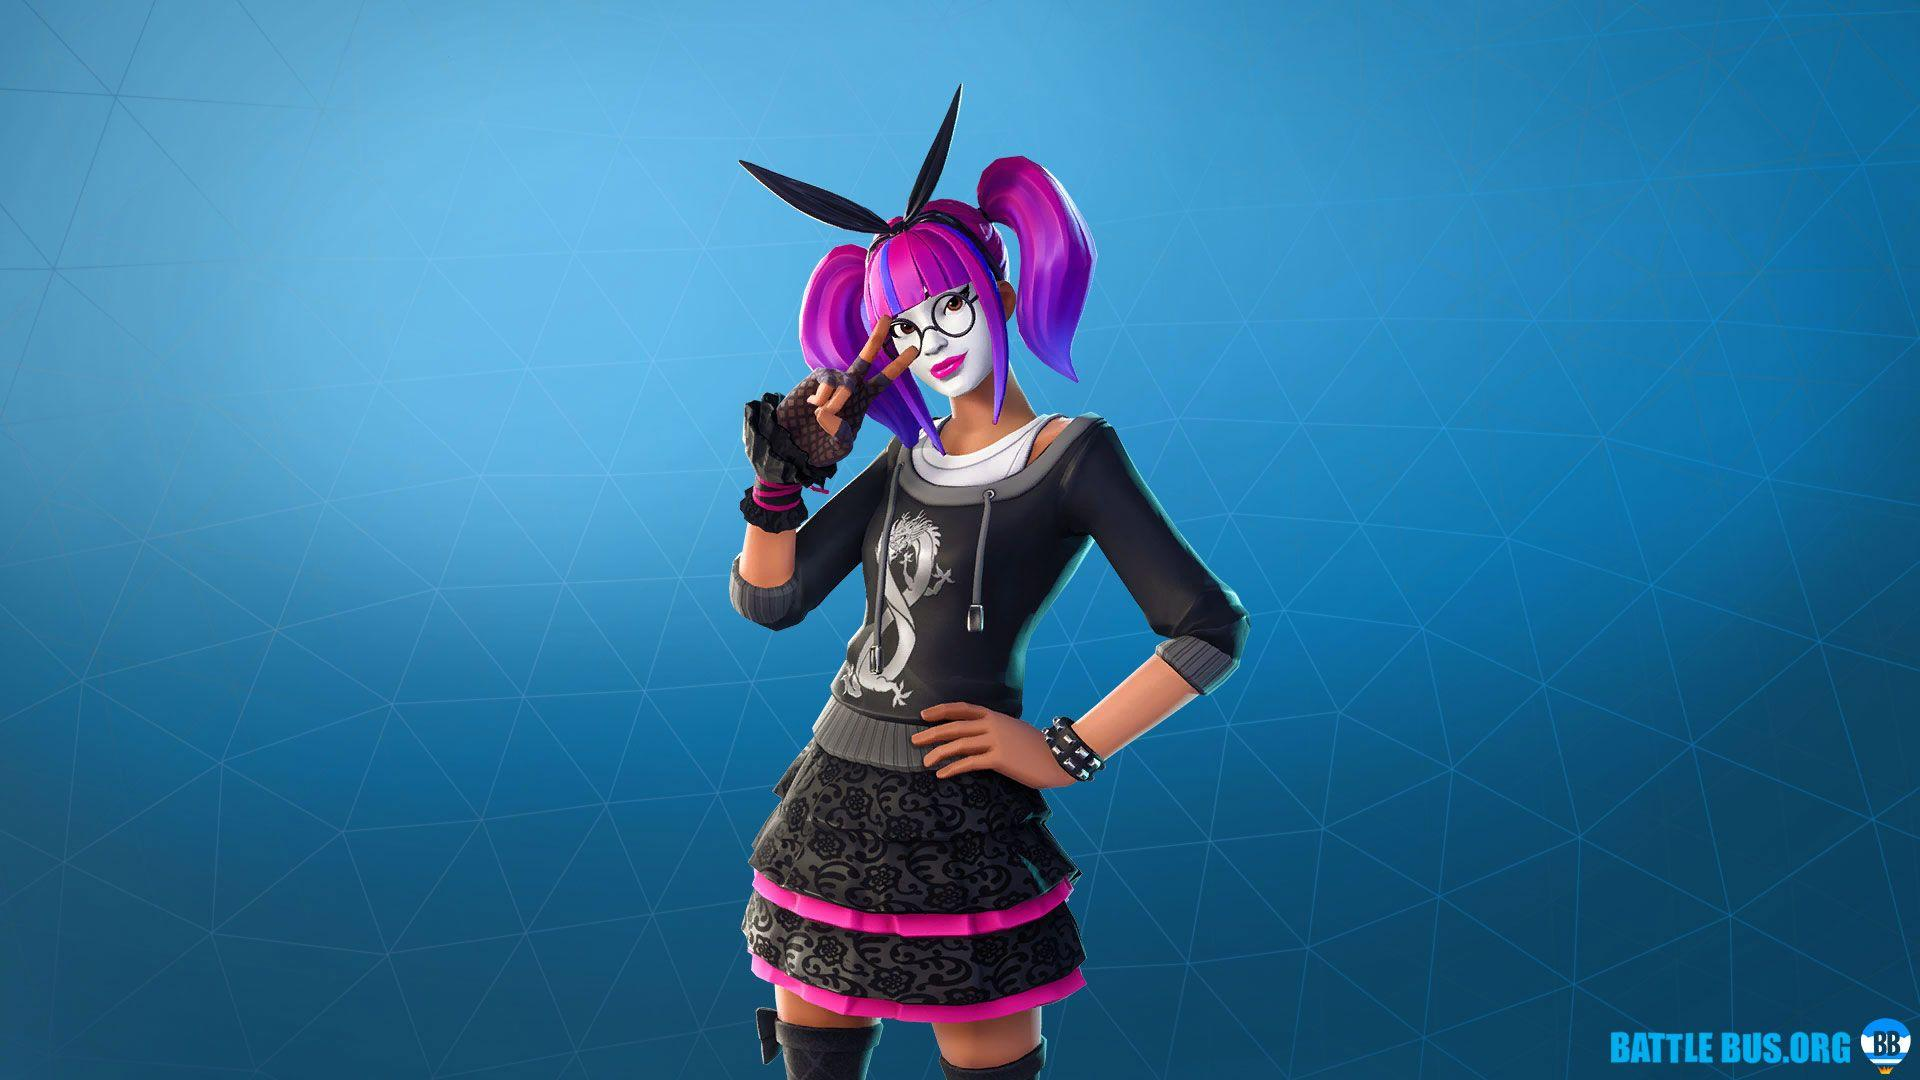 Lace - Ouroboros Set - Fortnite News, Skins, Settings, Updates